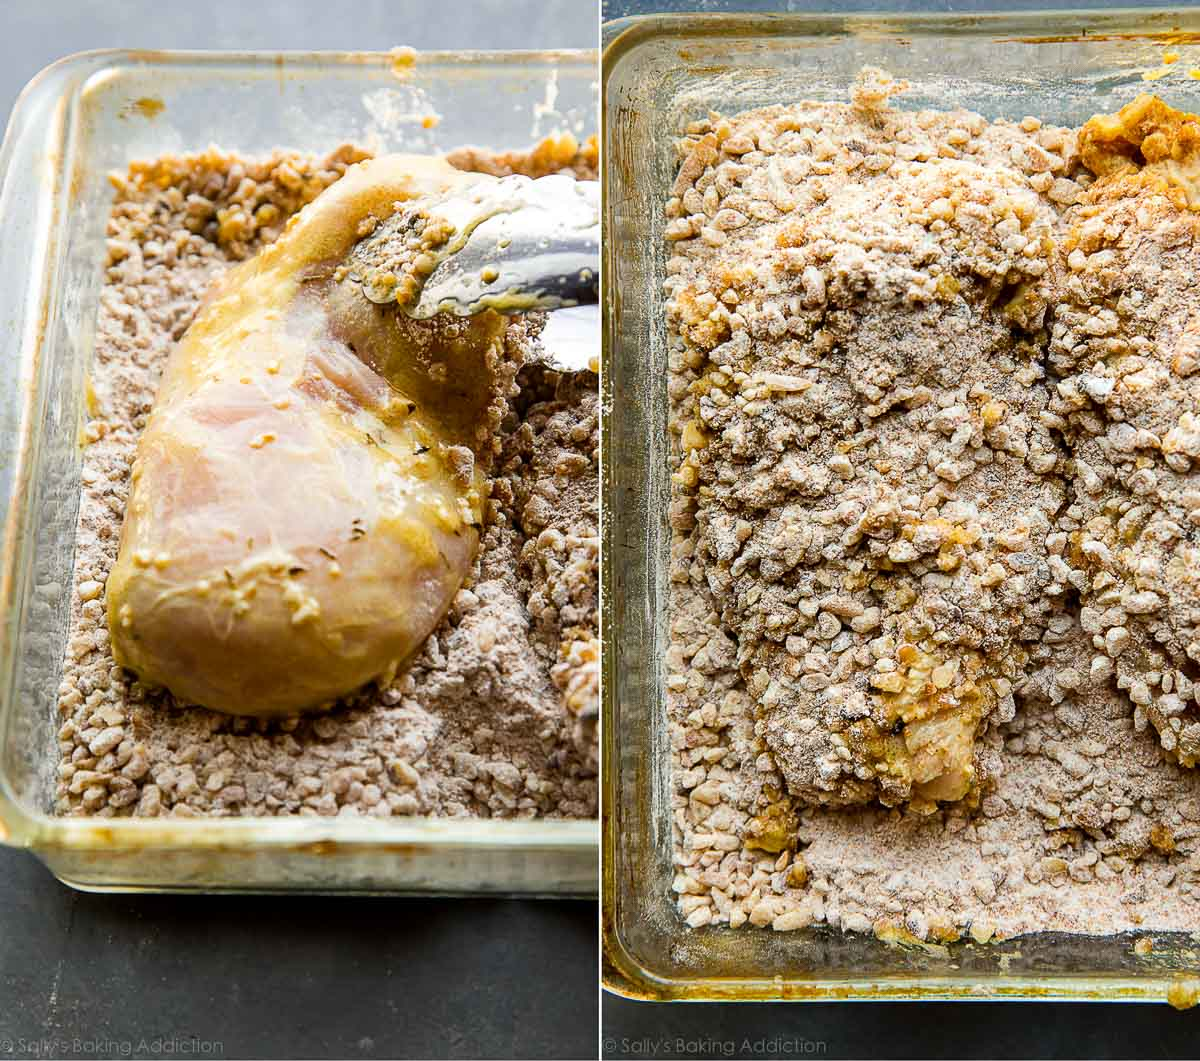 How to make walnut crusted chicken with honey mustard glaze on sallysbakingaddiction.com